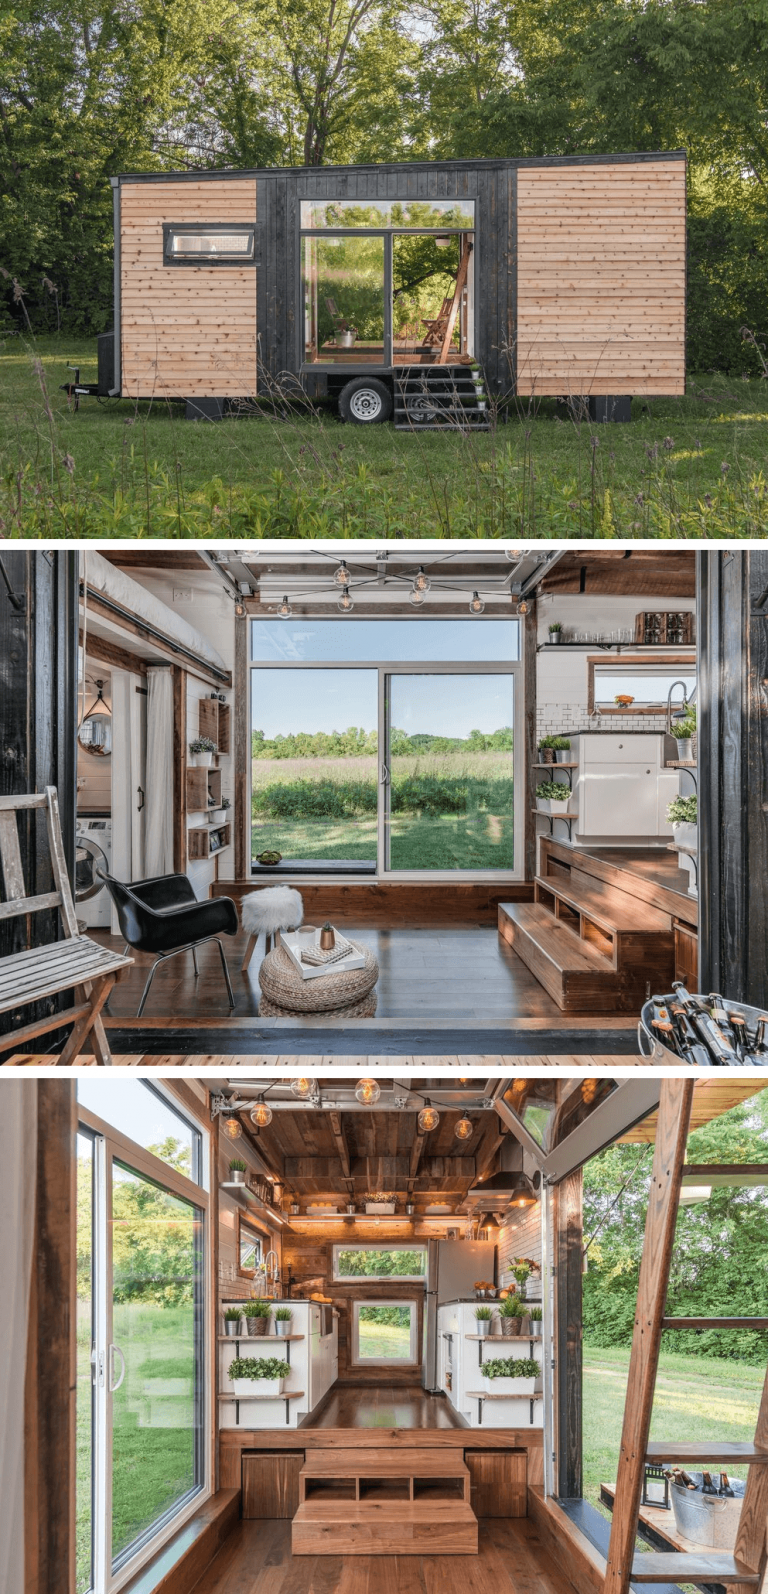 18 Tiny Houses on Wheels Design Ideas to Clone #tinyhomes